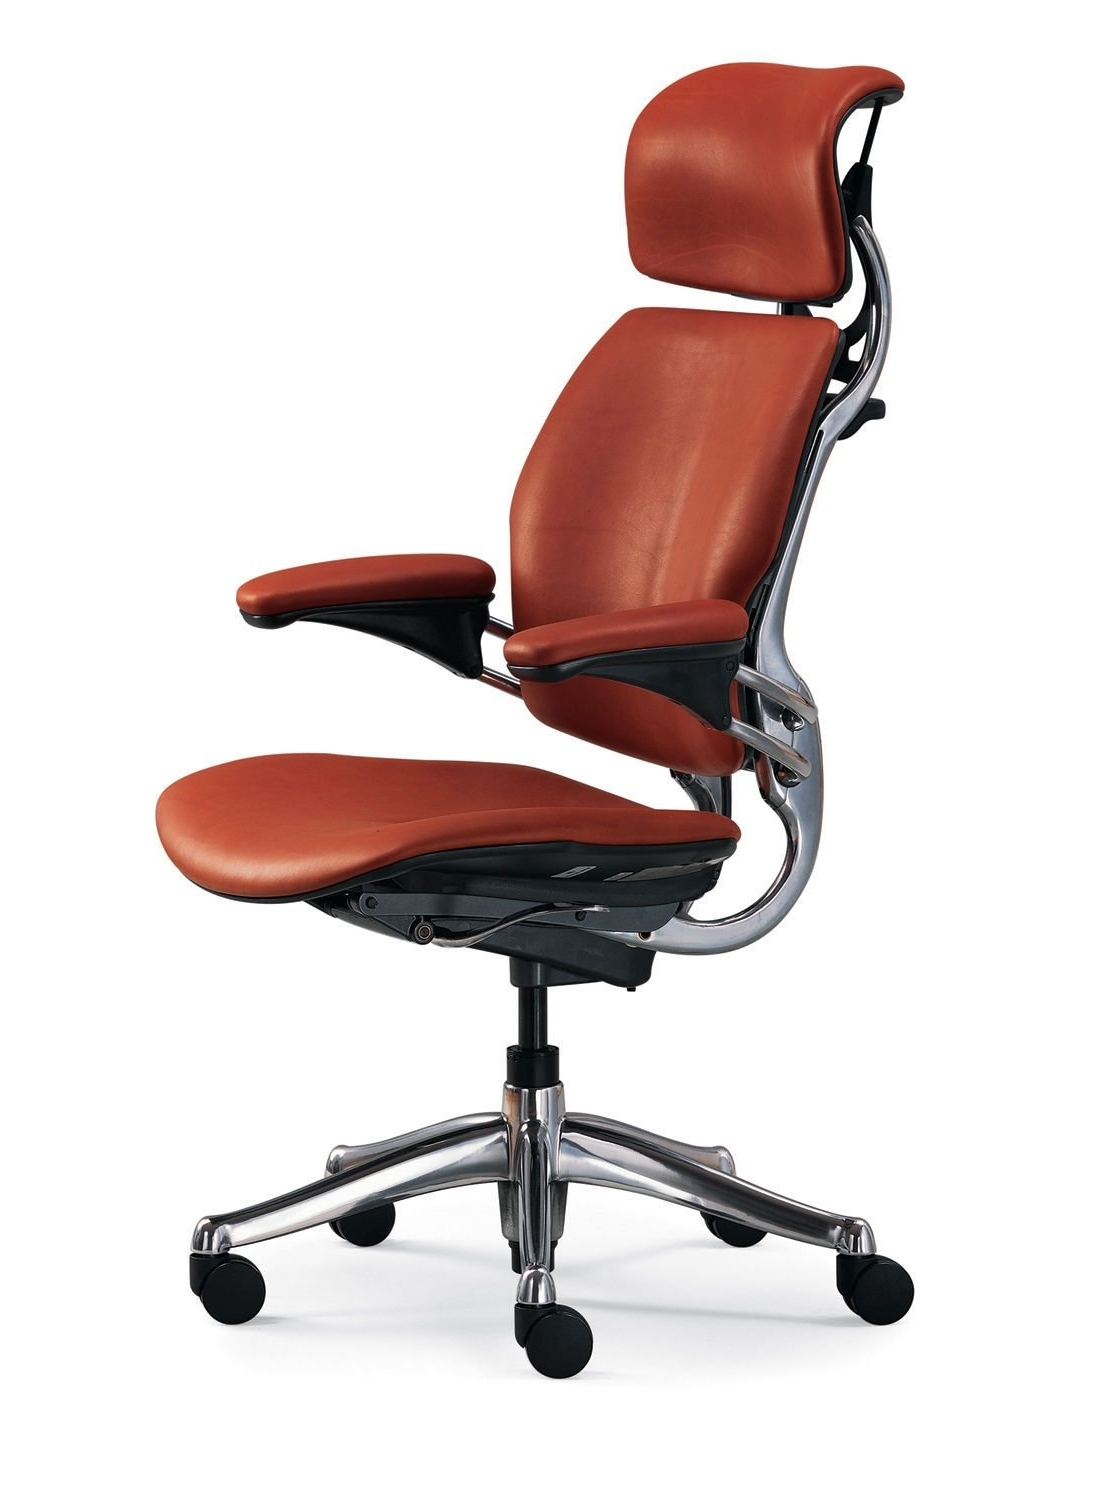 Popular Executive Office Chairs With Back Support Regarding Best Office Chair For 2018 – The Ultimate Guide – Office Chairs (View 19 of 20)